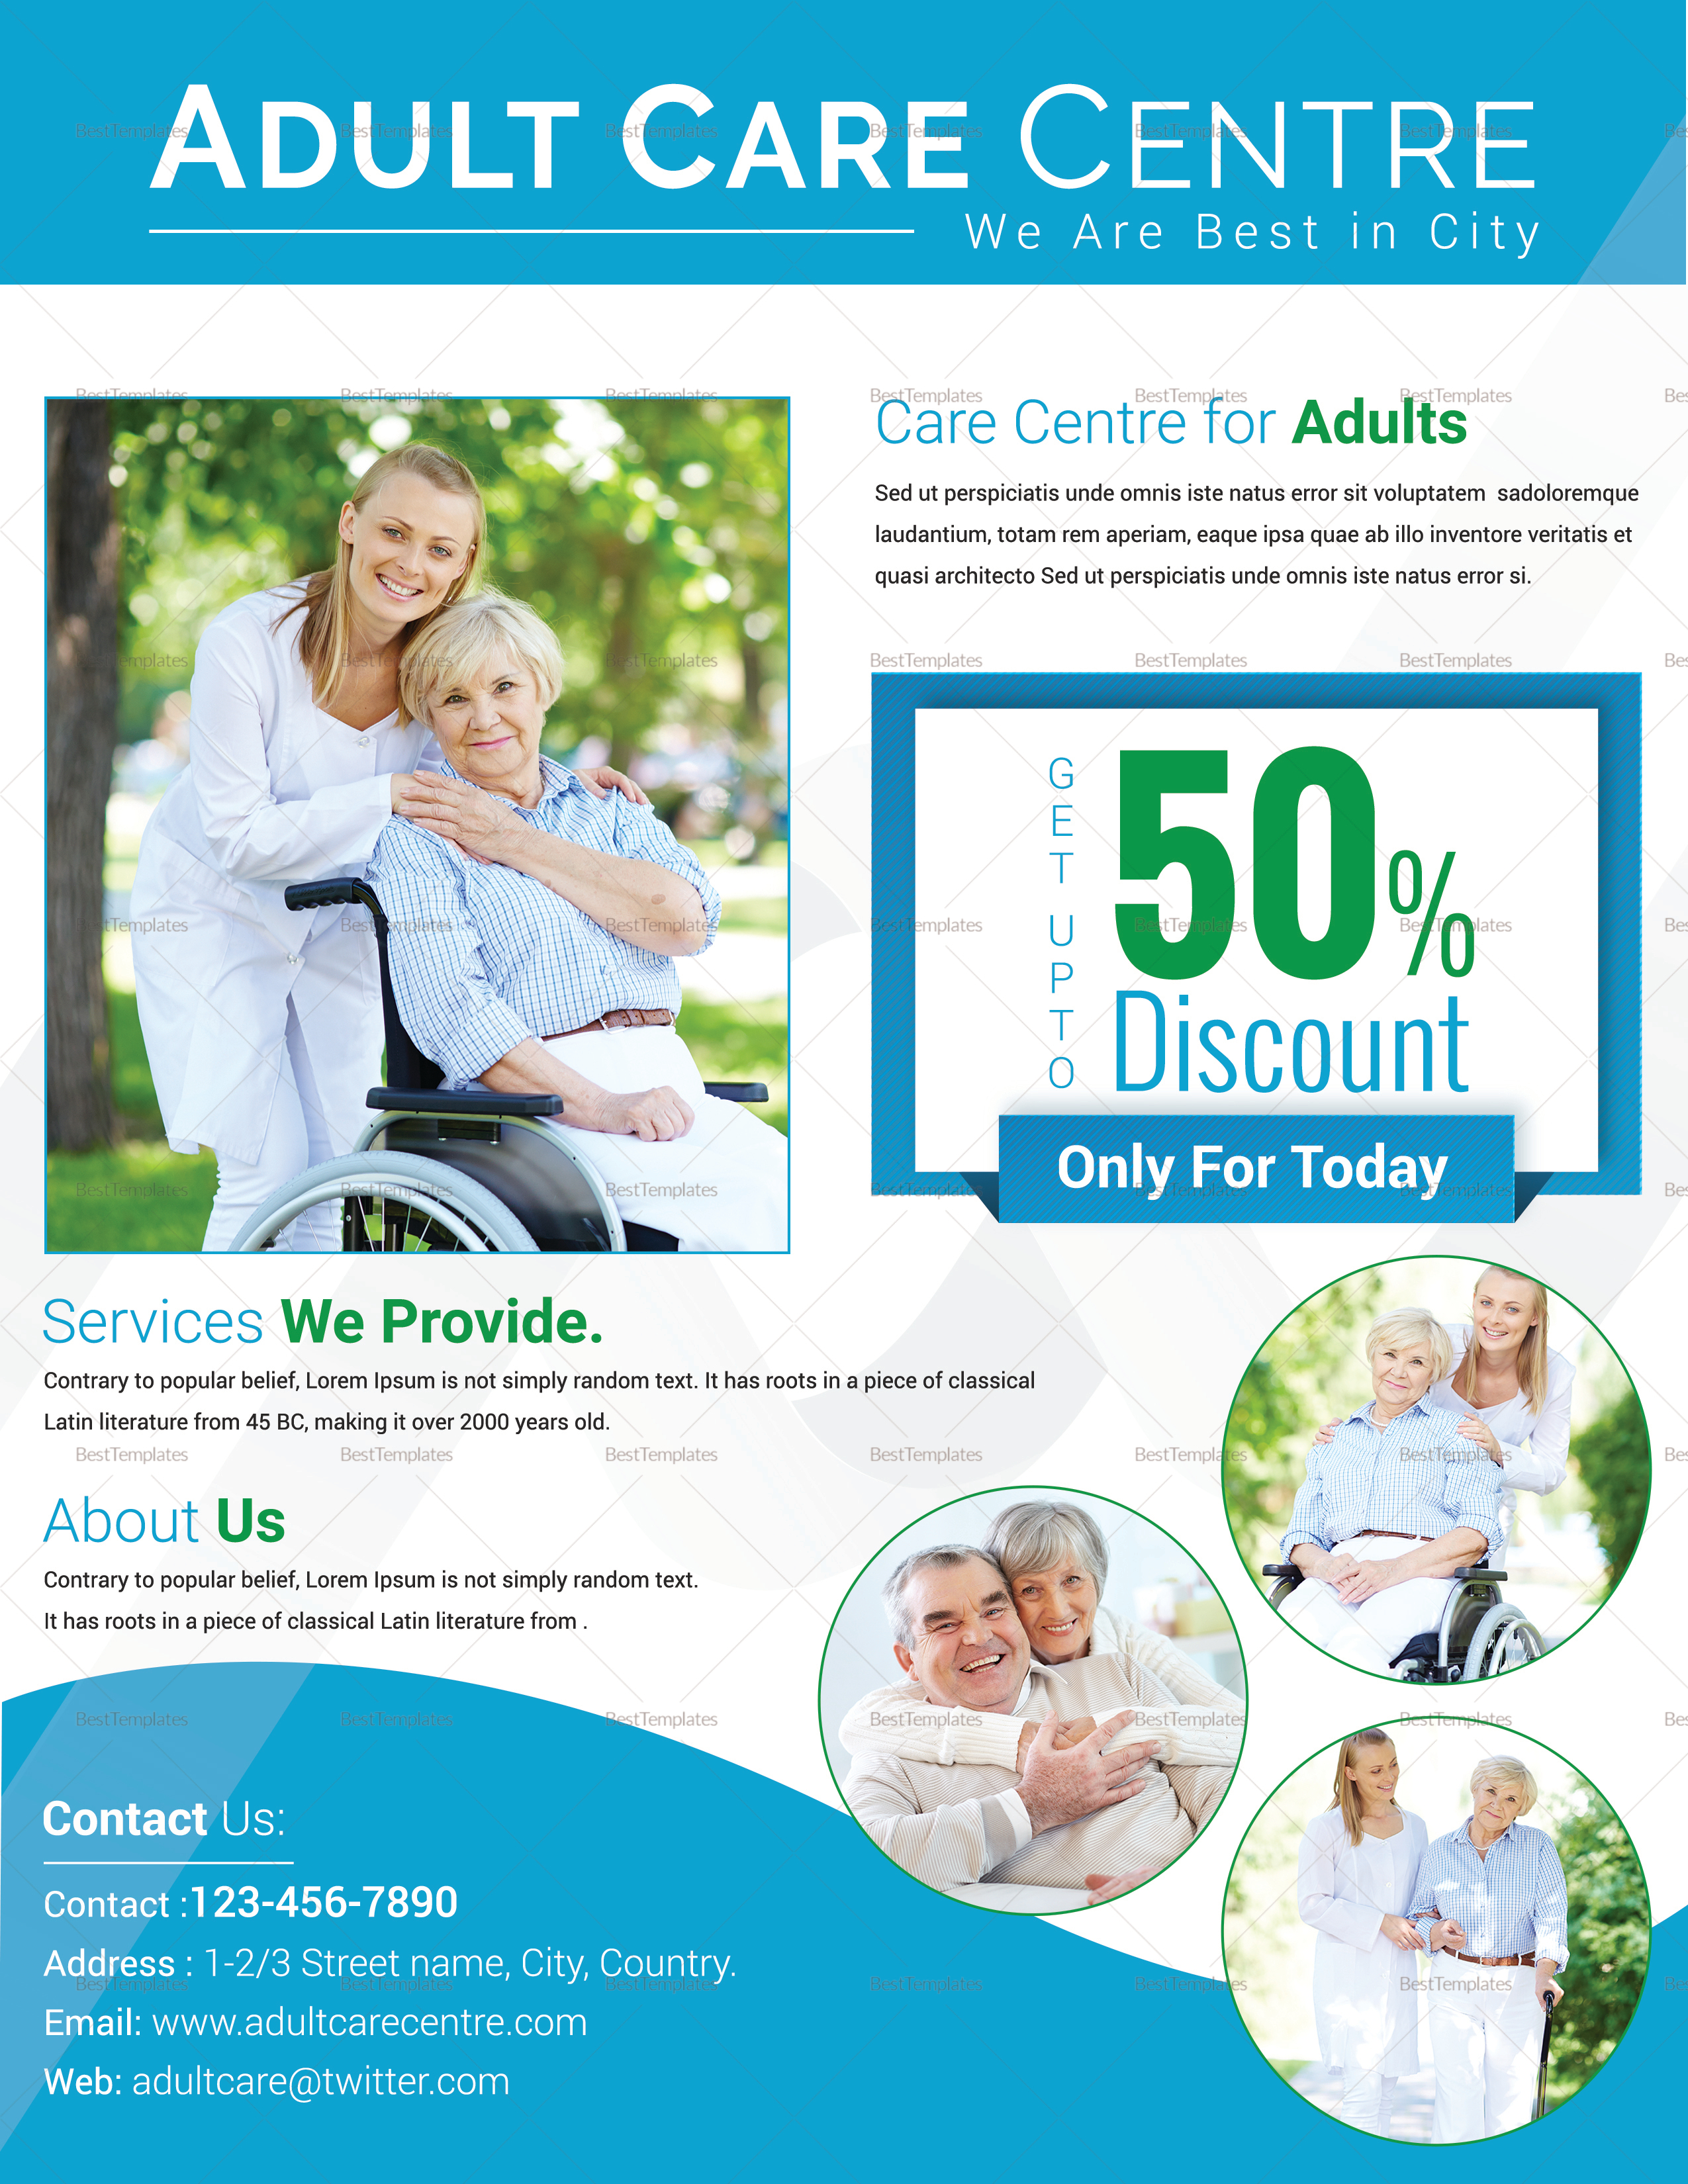 Adult Day Care Center Flyer Design Template in PSD, Word, Publisher